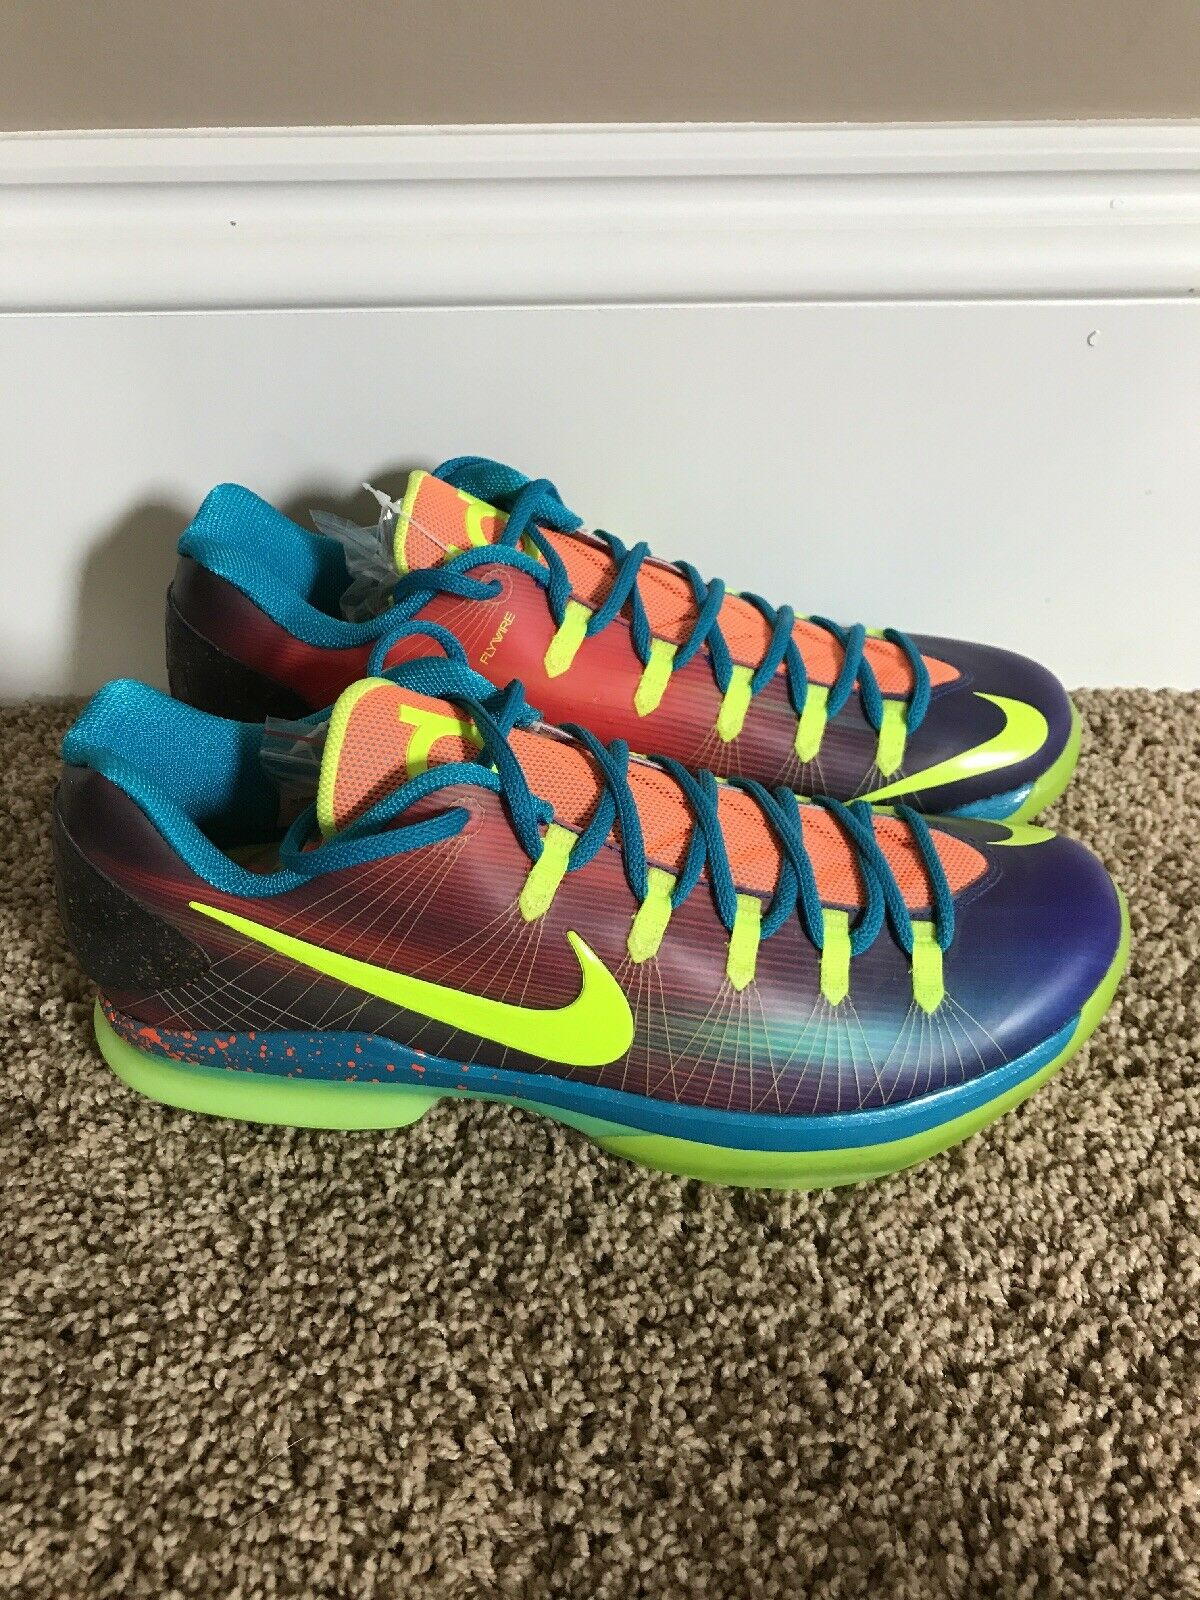 Nike Kd 5 EYBL PE Rare Comfortable The latest discount shoes for men and women